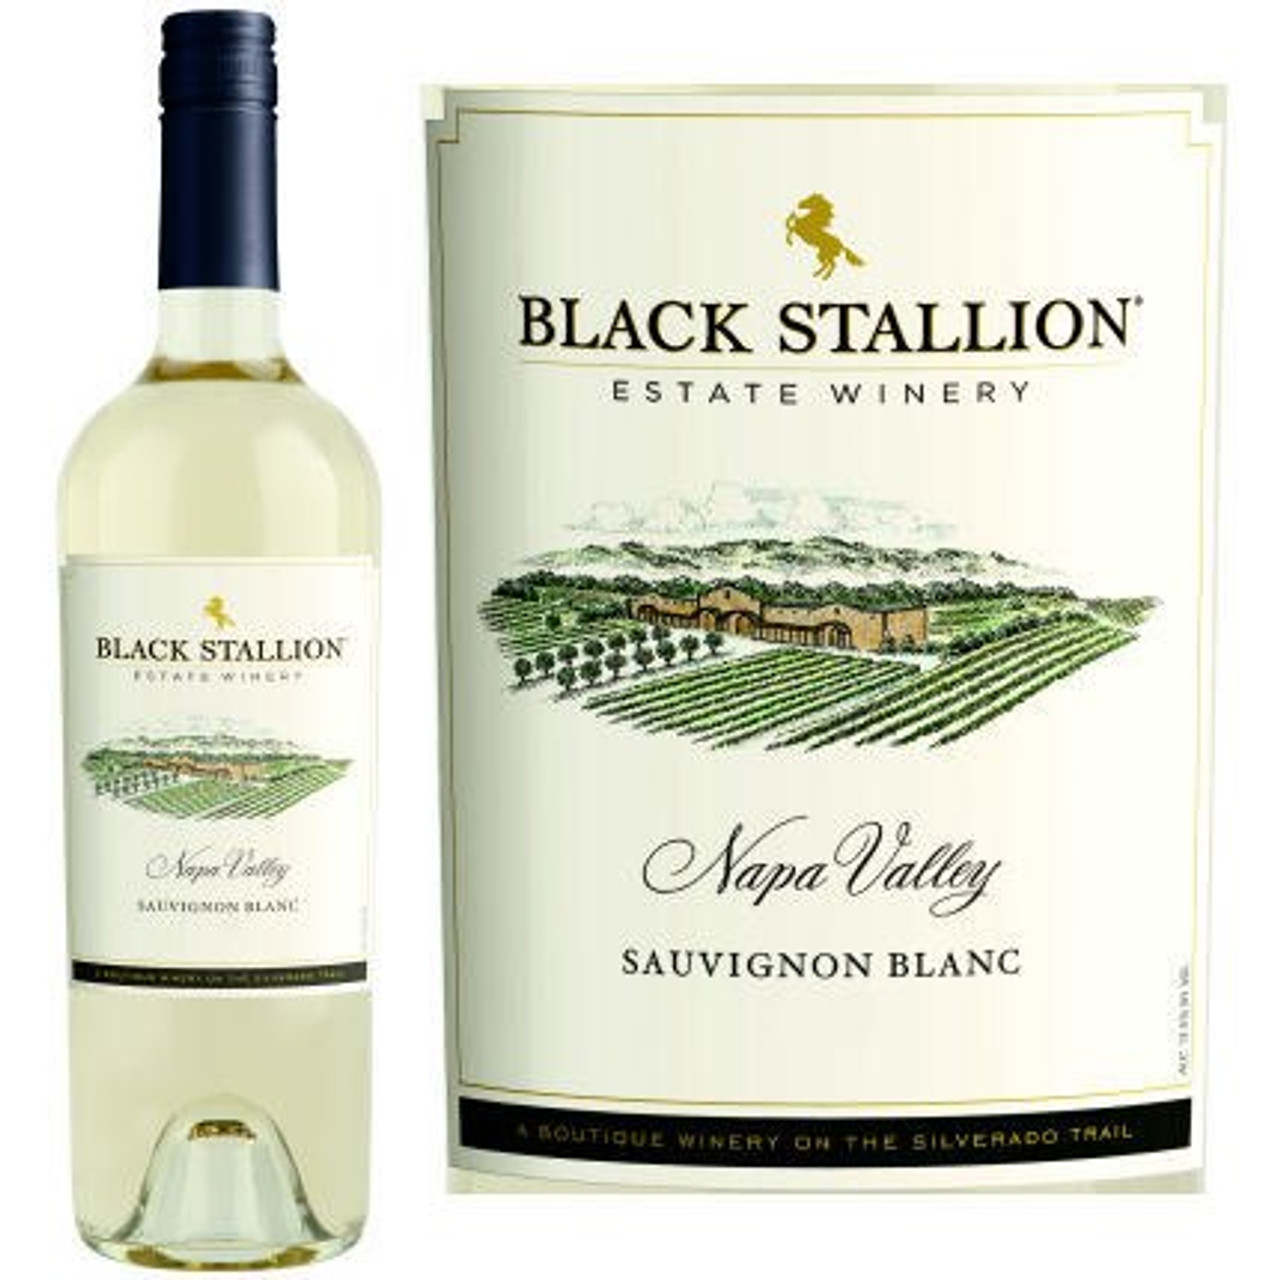 12 Bottle Case Black Stallion Napa Sauvignon Blanc 2017 Rated 91WE EDITORS CHOICE w/ Free Shipping